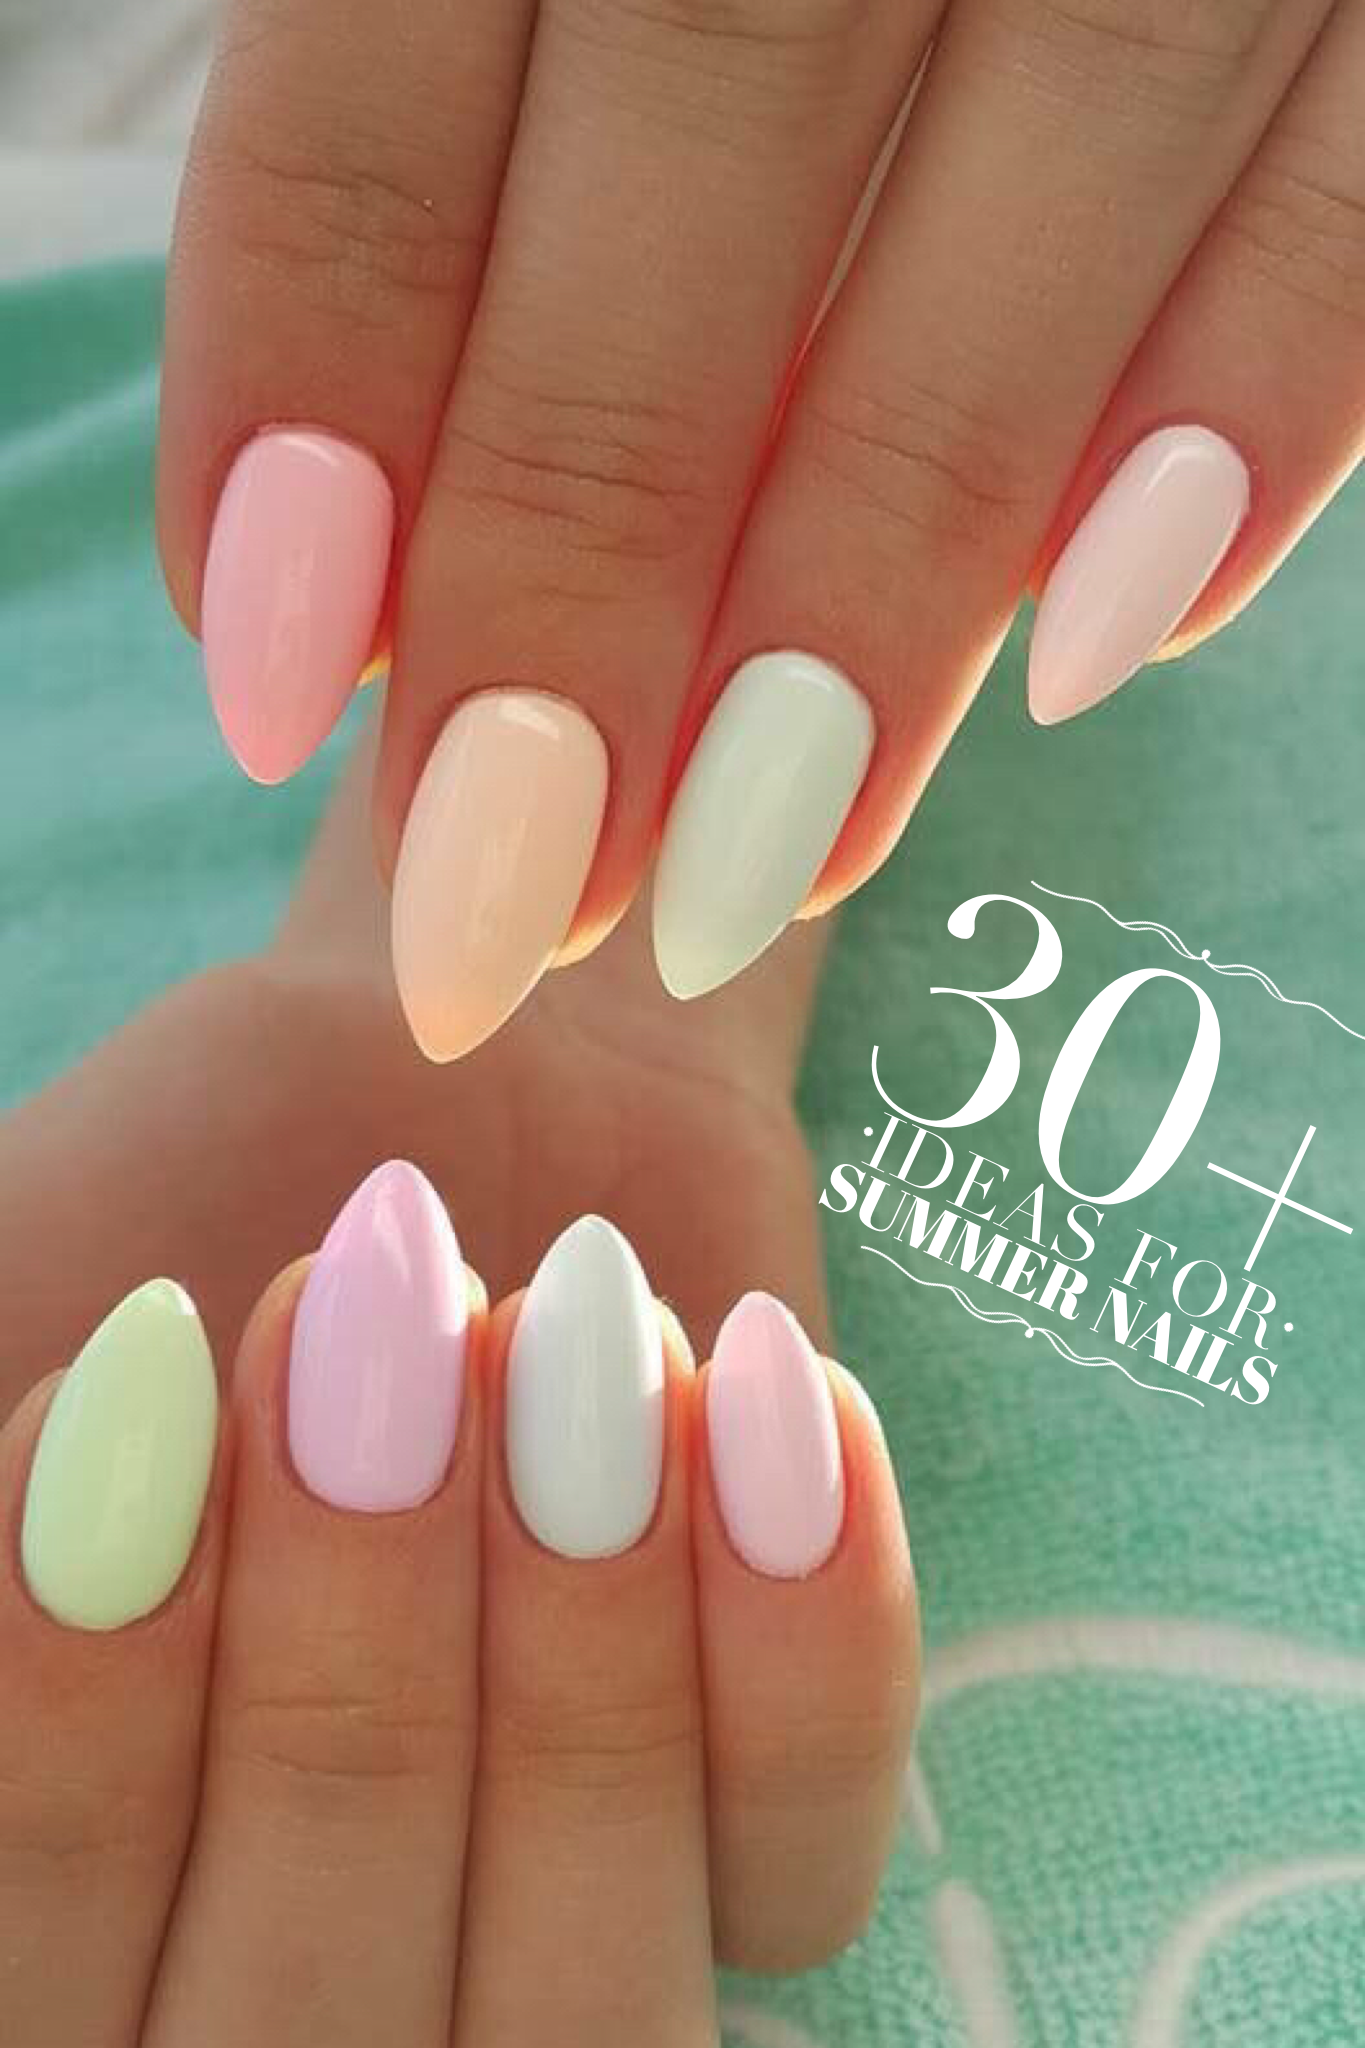 34 Nails Ideas You Must Try This Summer Allthestufficareabout Com Nails Rainbow Nails Spring Nail Art